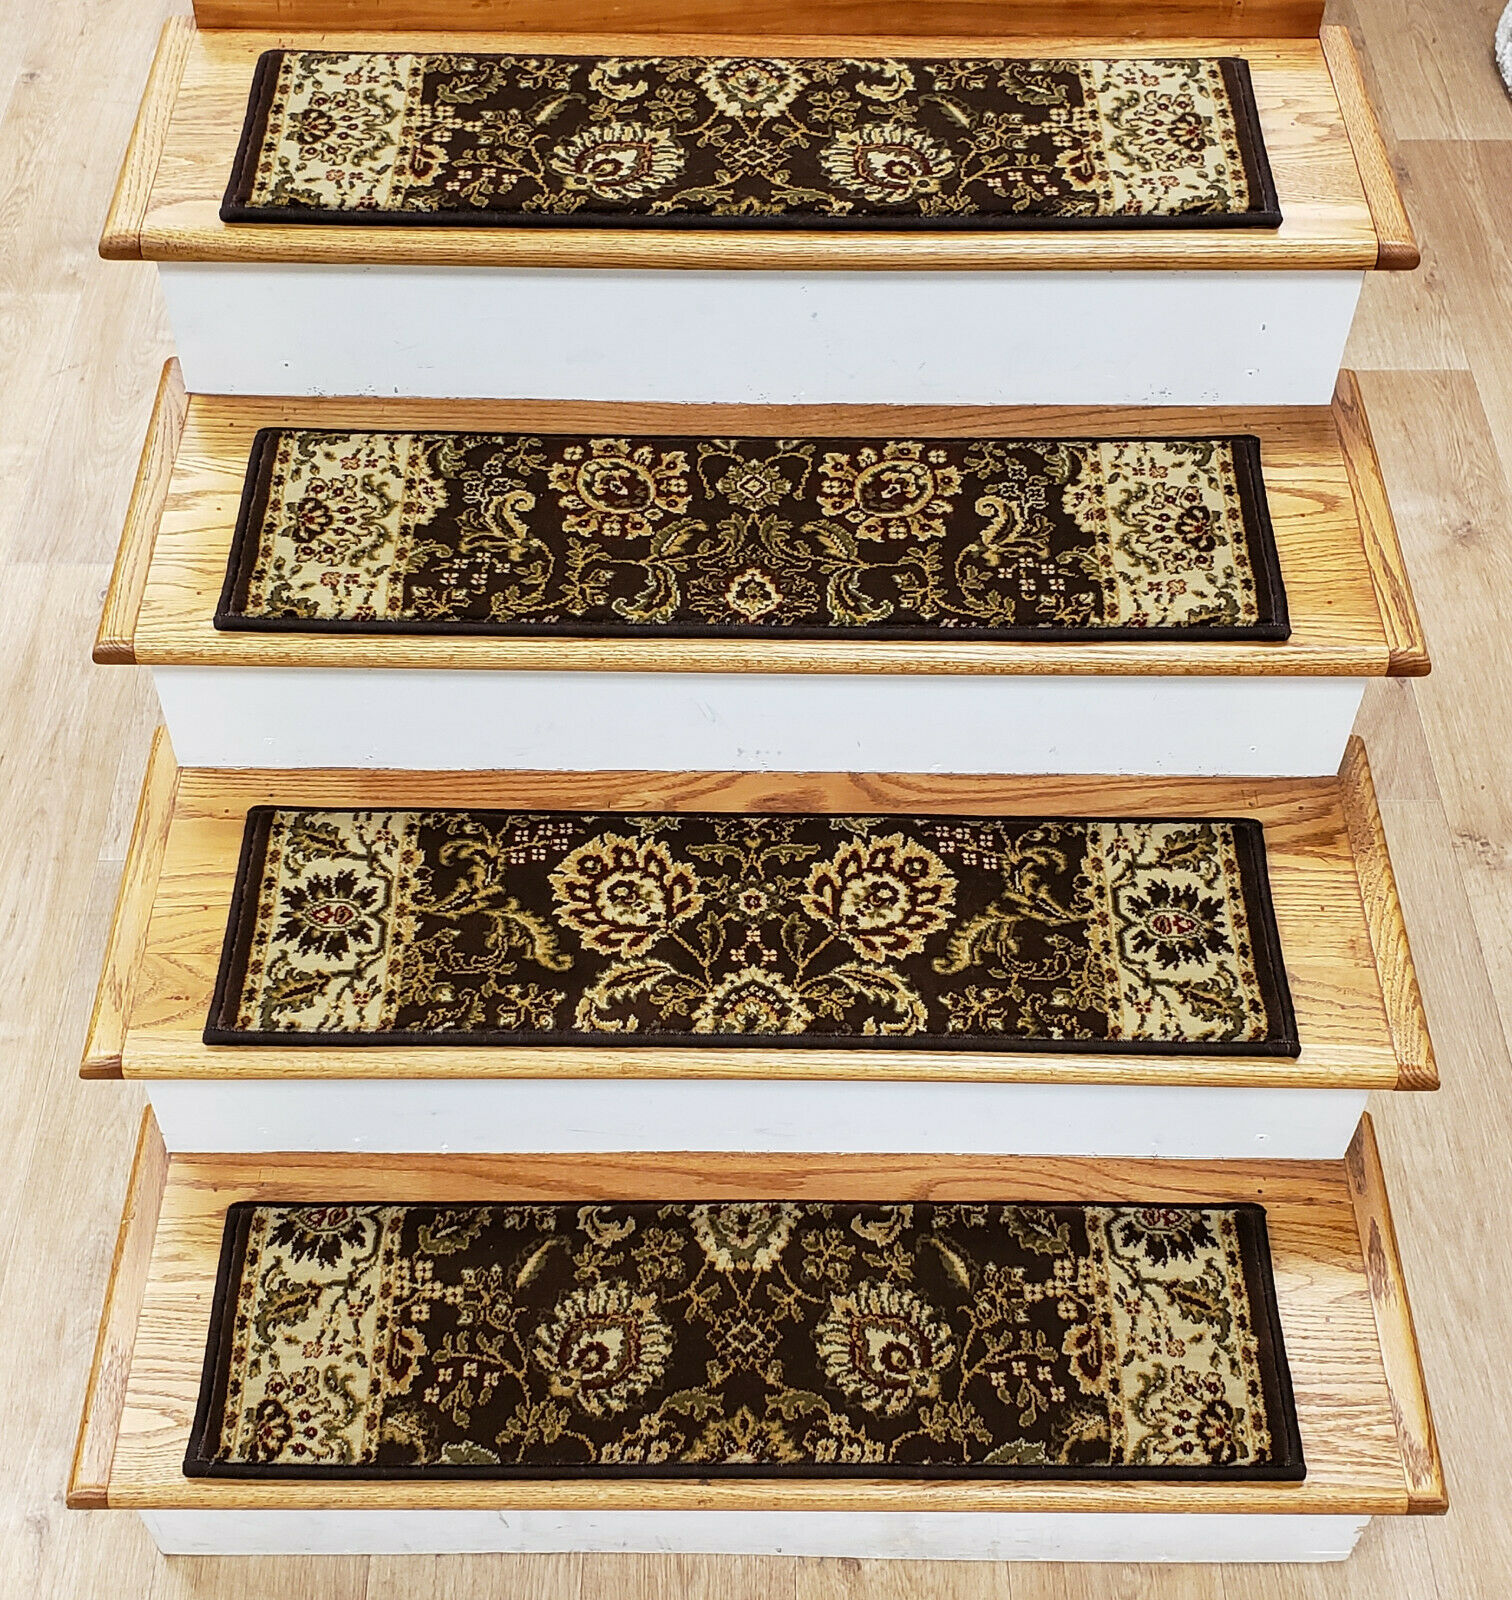 Rug Depot 13 Traditional Non Slip Carpet Stair Treads 31  x 9  Marronee Stair Rugs